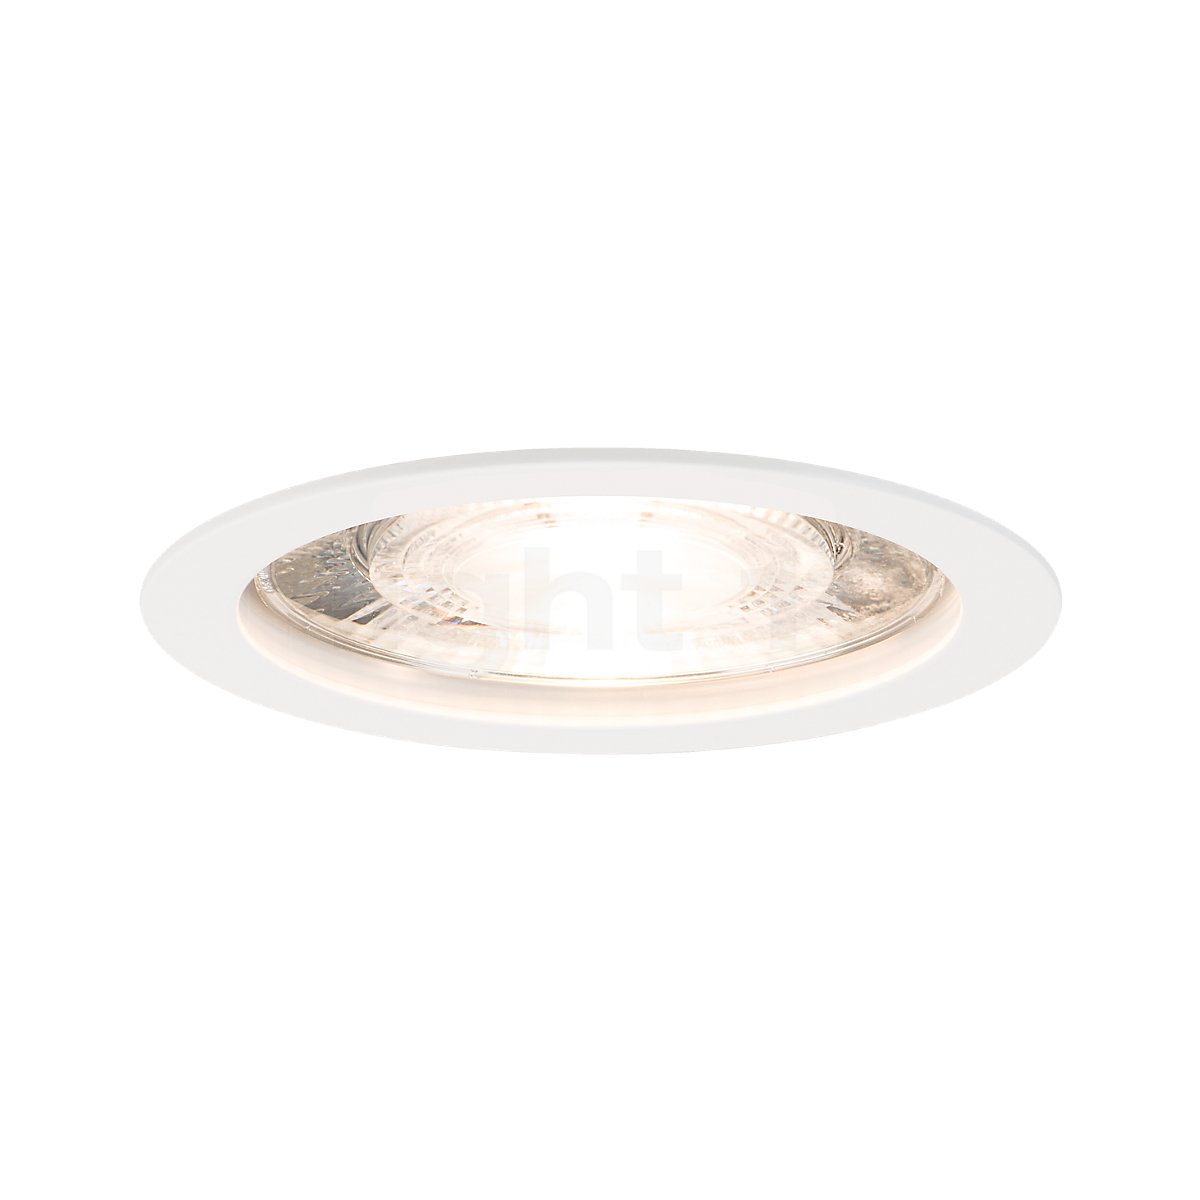 Buy Mawa Wittenberg 4 0 Recessed Ceiling Light Round Rimmed Led Exkl Transformer At